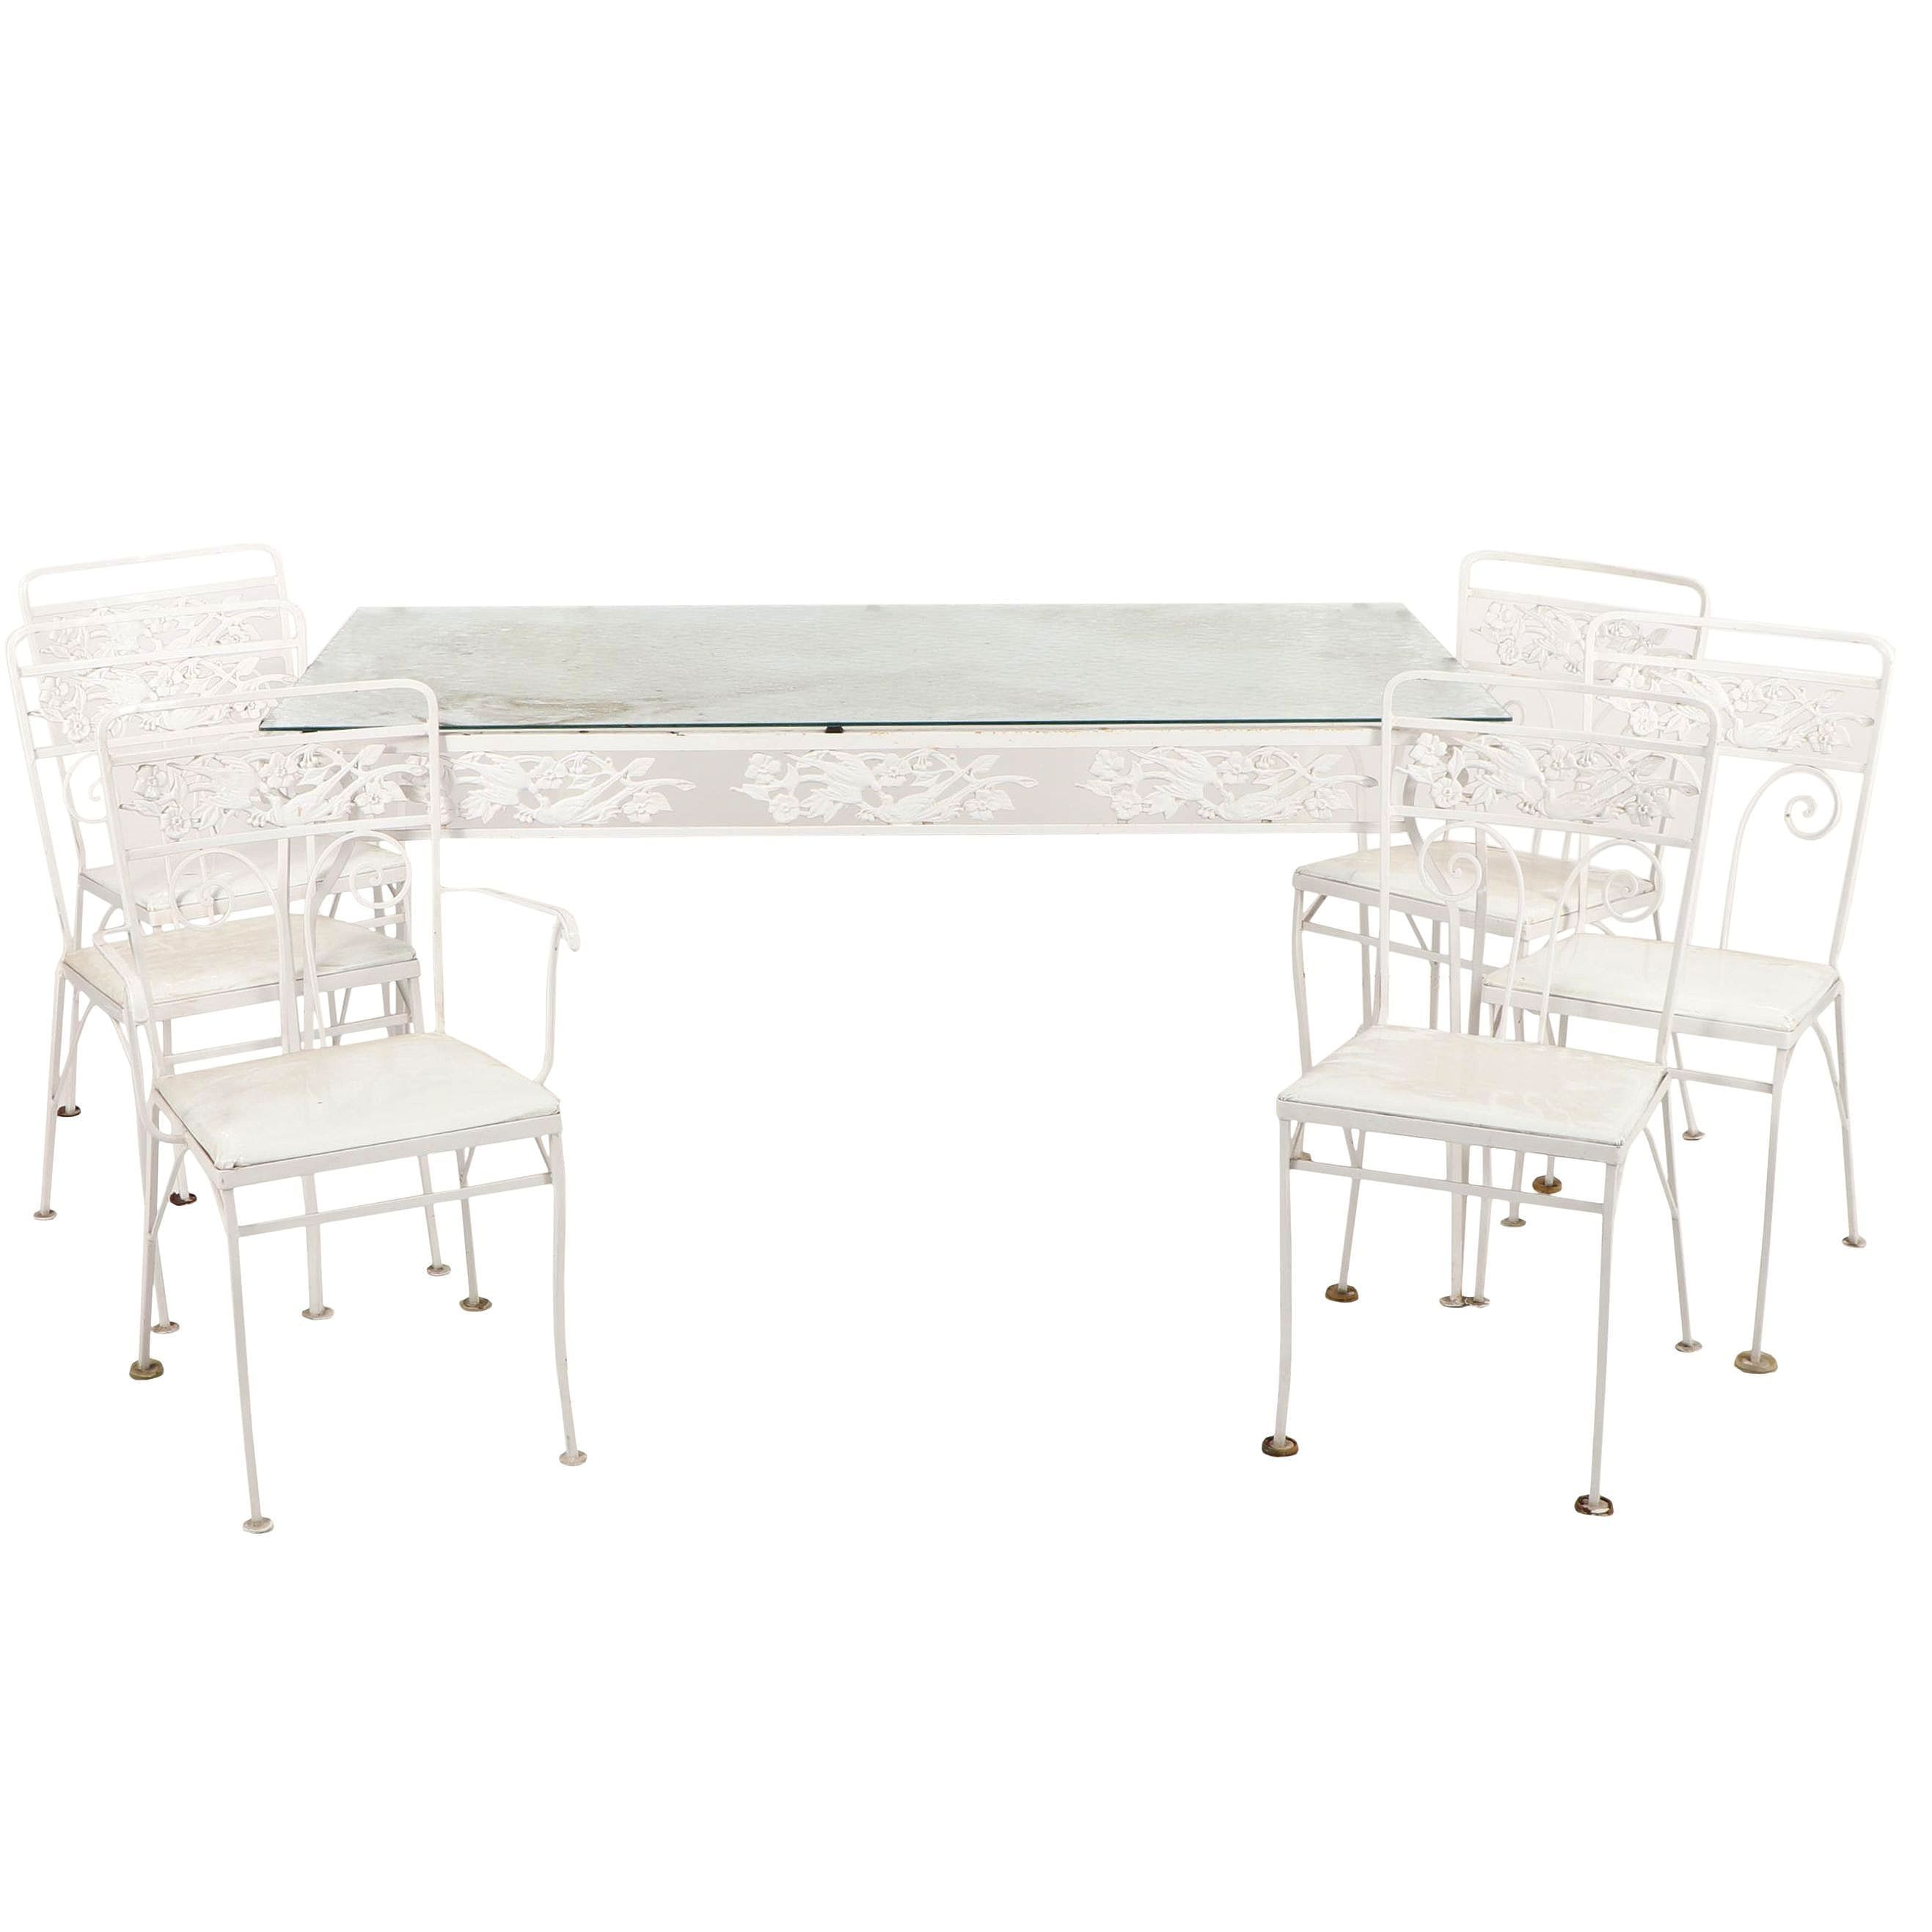 White Metal Glass Top Patio Table and Chairs